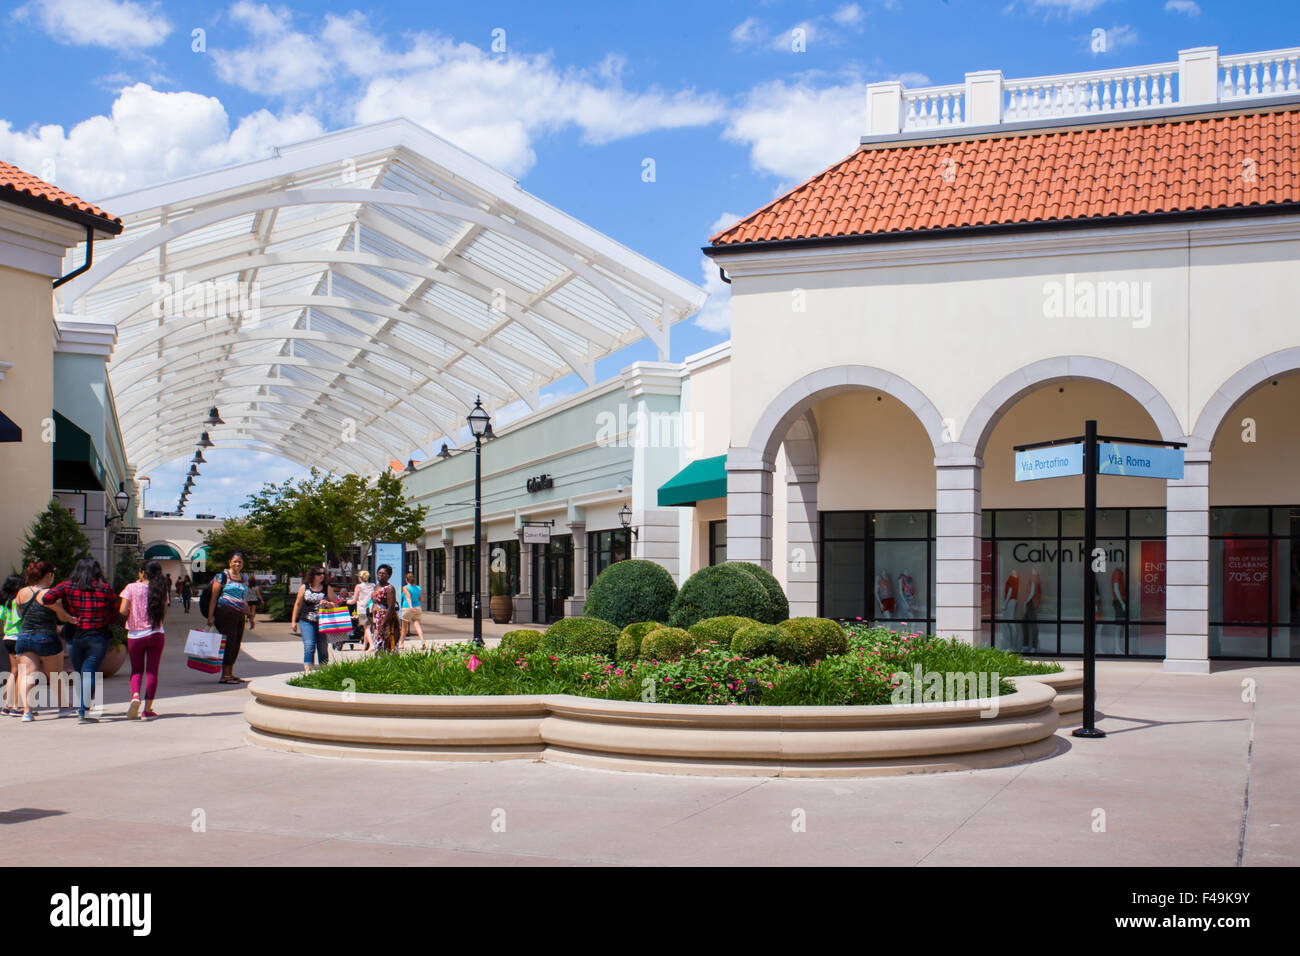 Factory Outlet Stock Photos & Factory Outlet Stock Images - Alamy